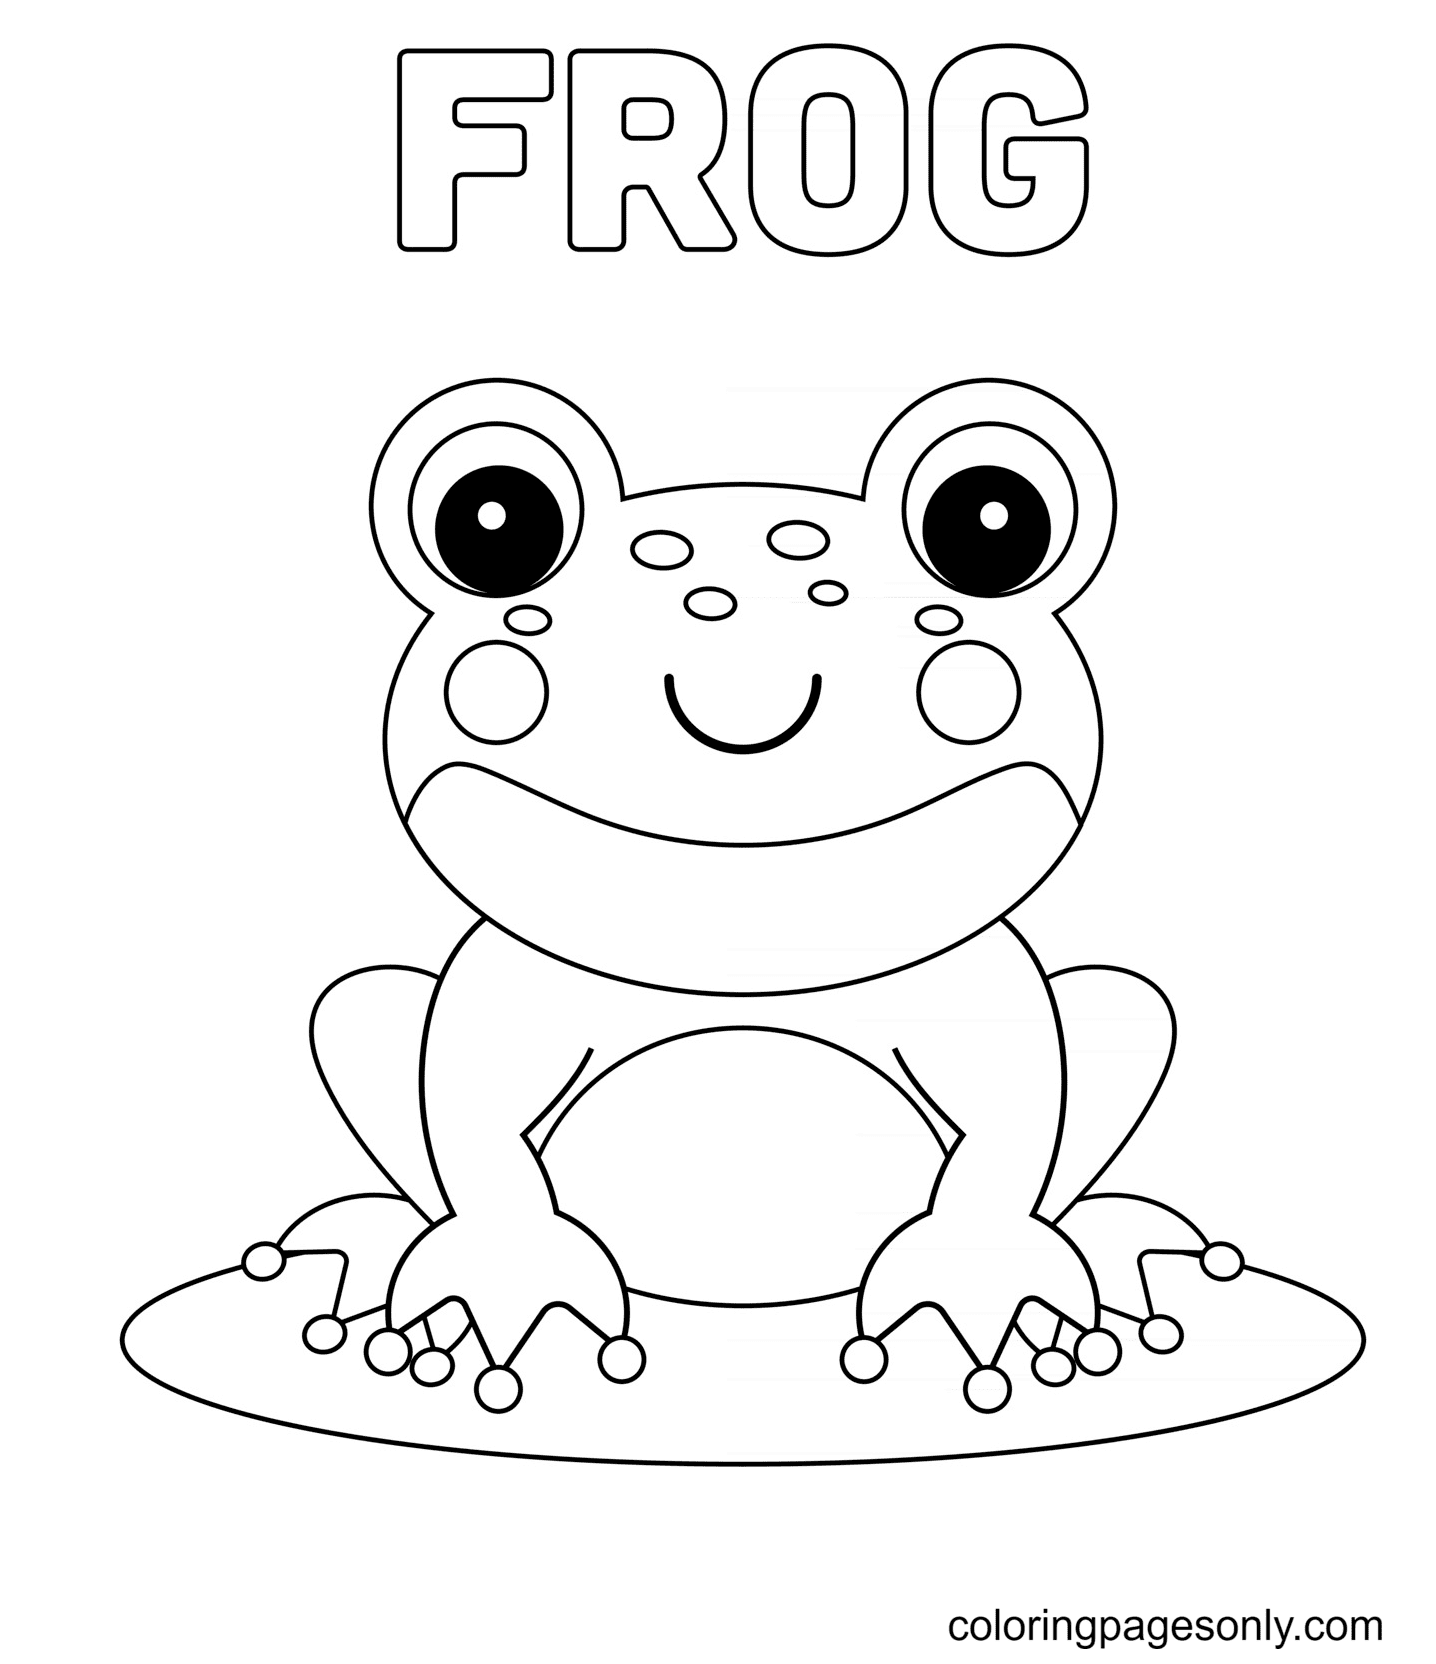 Cute Baby Frog Coloring Page